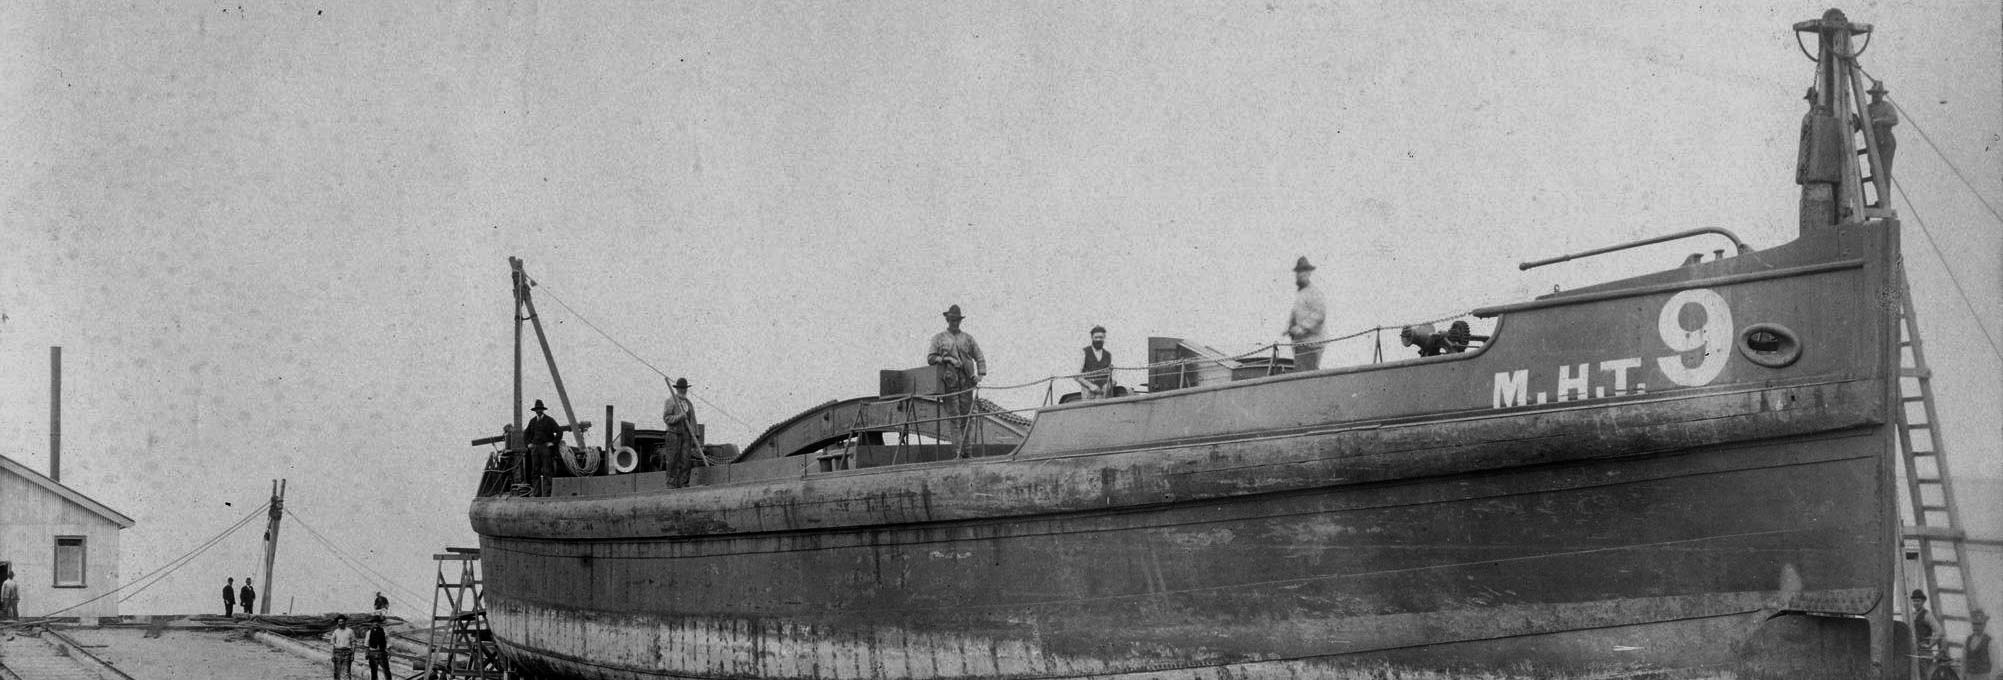 Black and white photo of a ship with crew